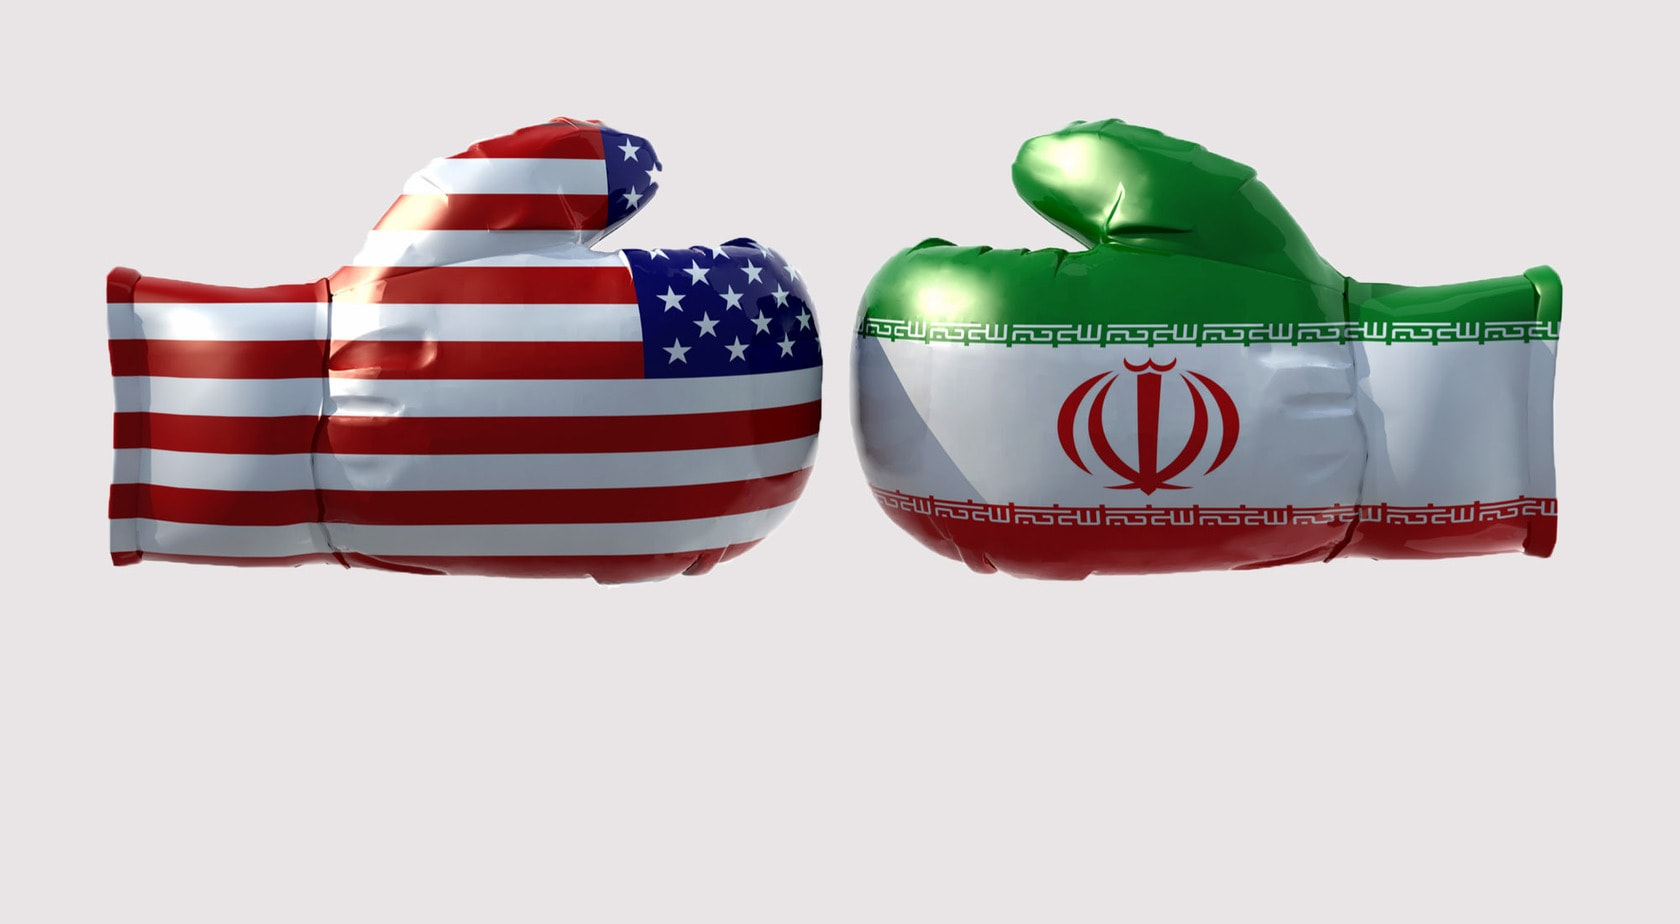 Iran, the Nuclear Agenda and the United States